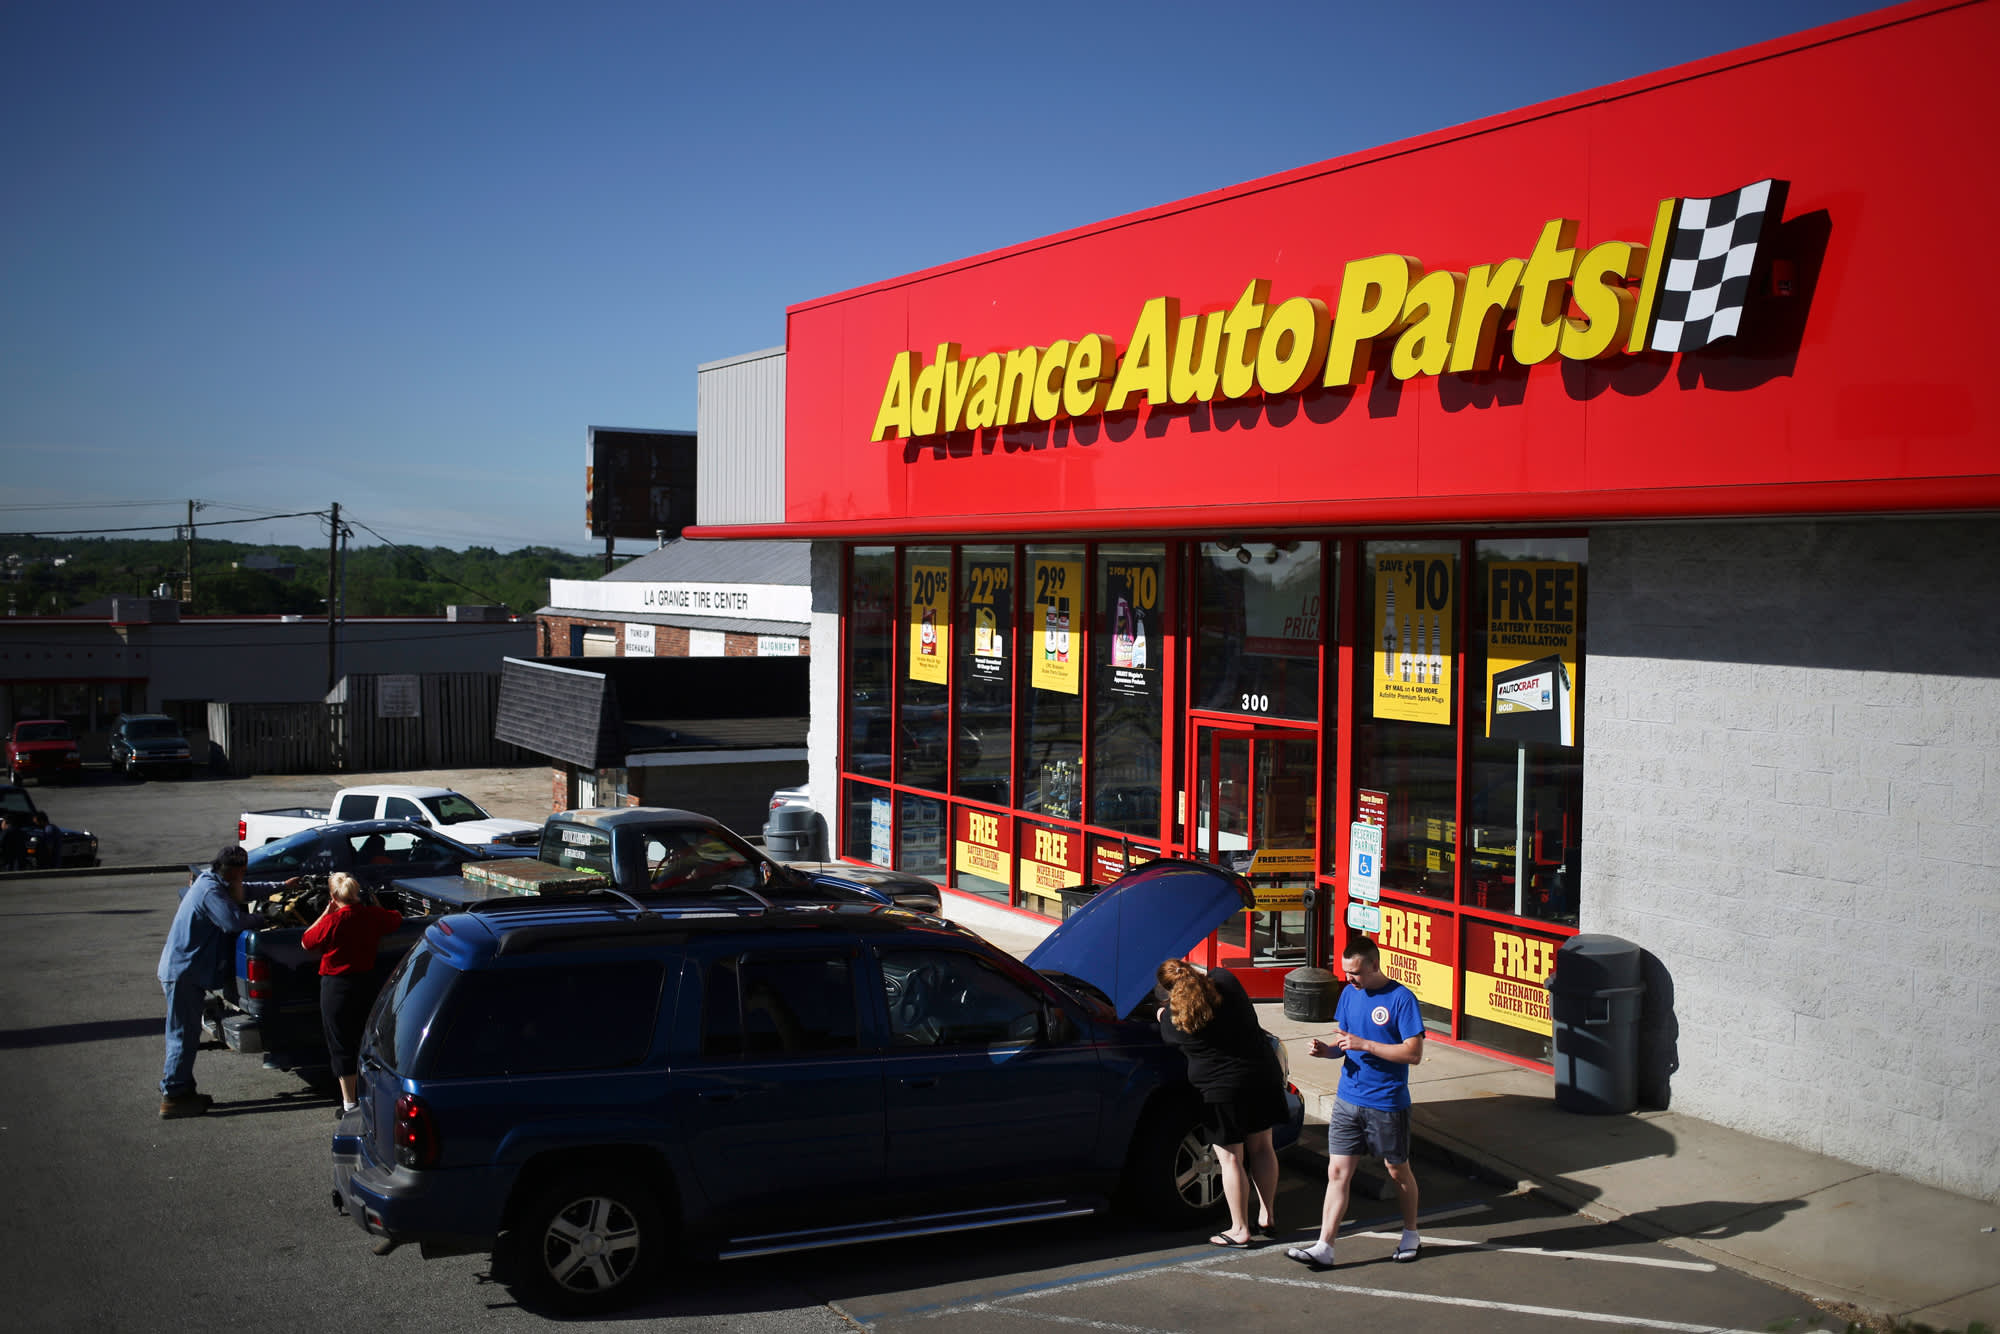 Walmart Pairs With Advance Auto Parts On New Online Specialty Store